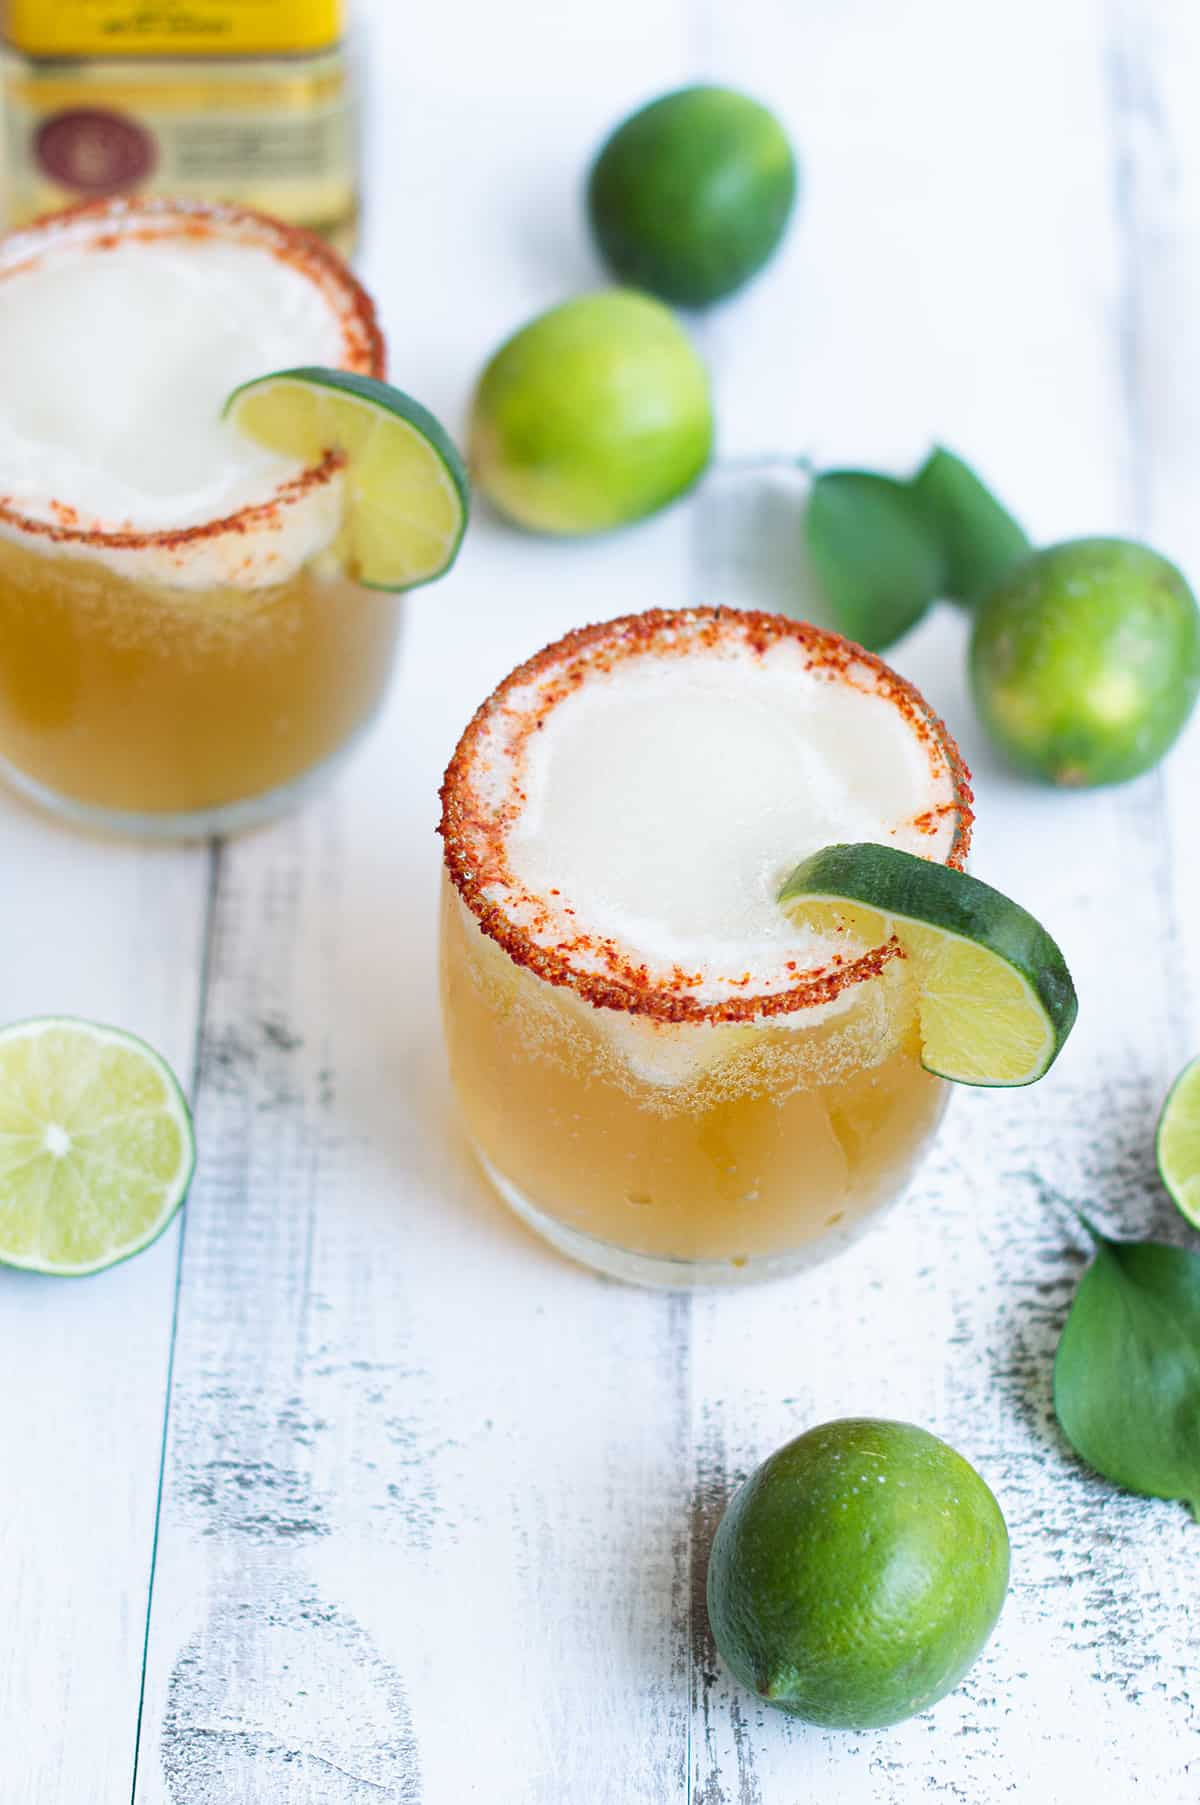 beer margarita, garnished with lime and chili salt, on white table with limes